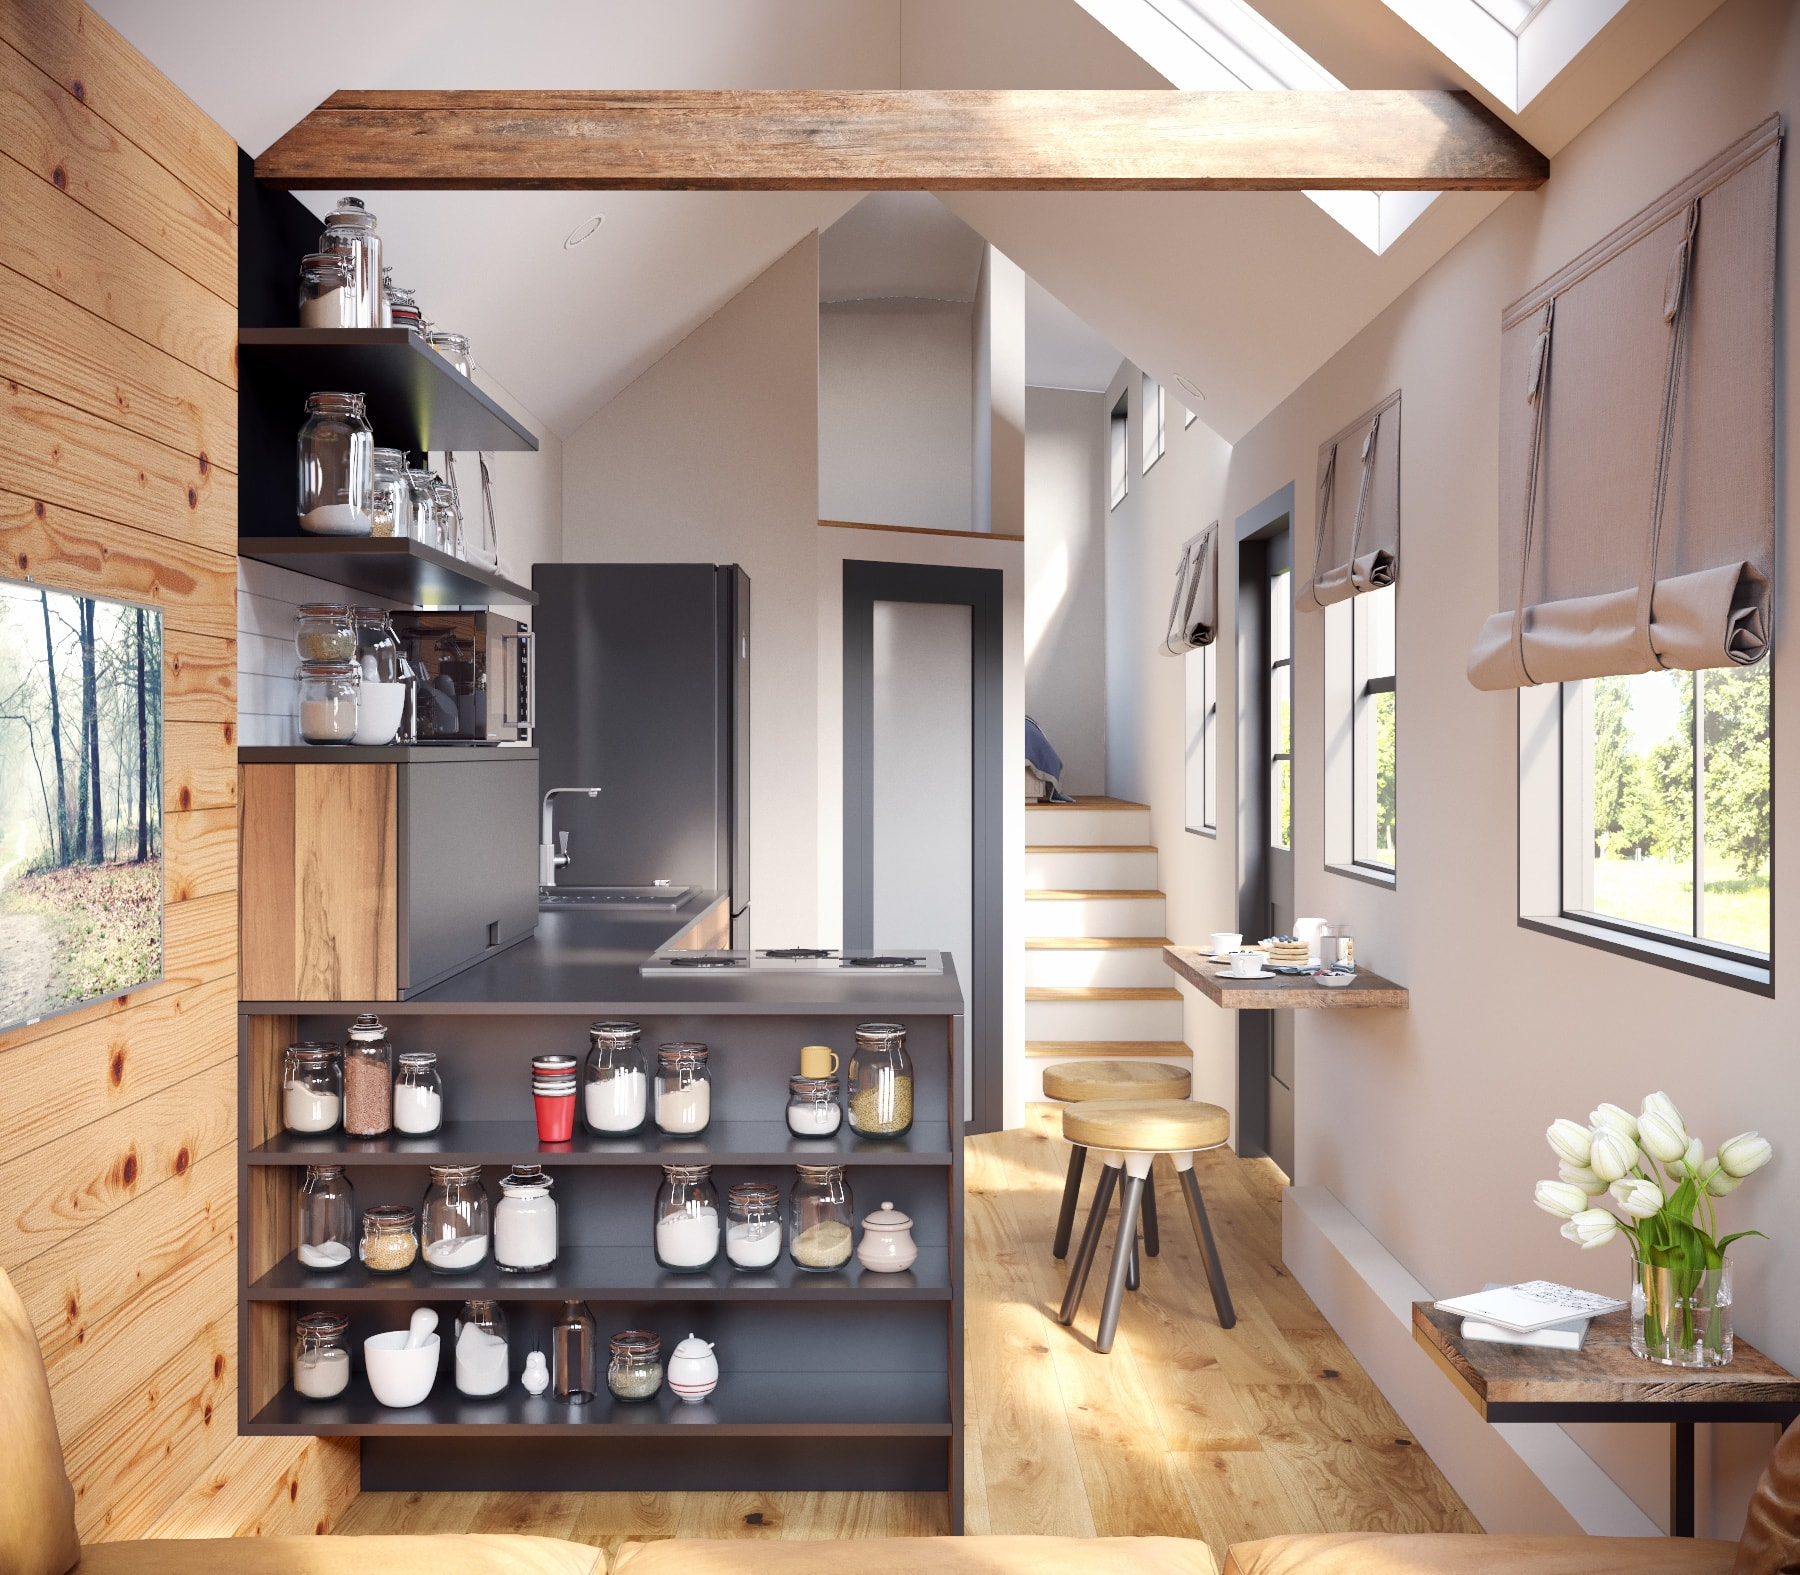 Move In Ready Luxury Tiny Houses Starting at 25K  Apartment Therapy